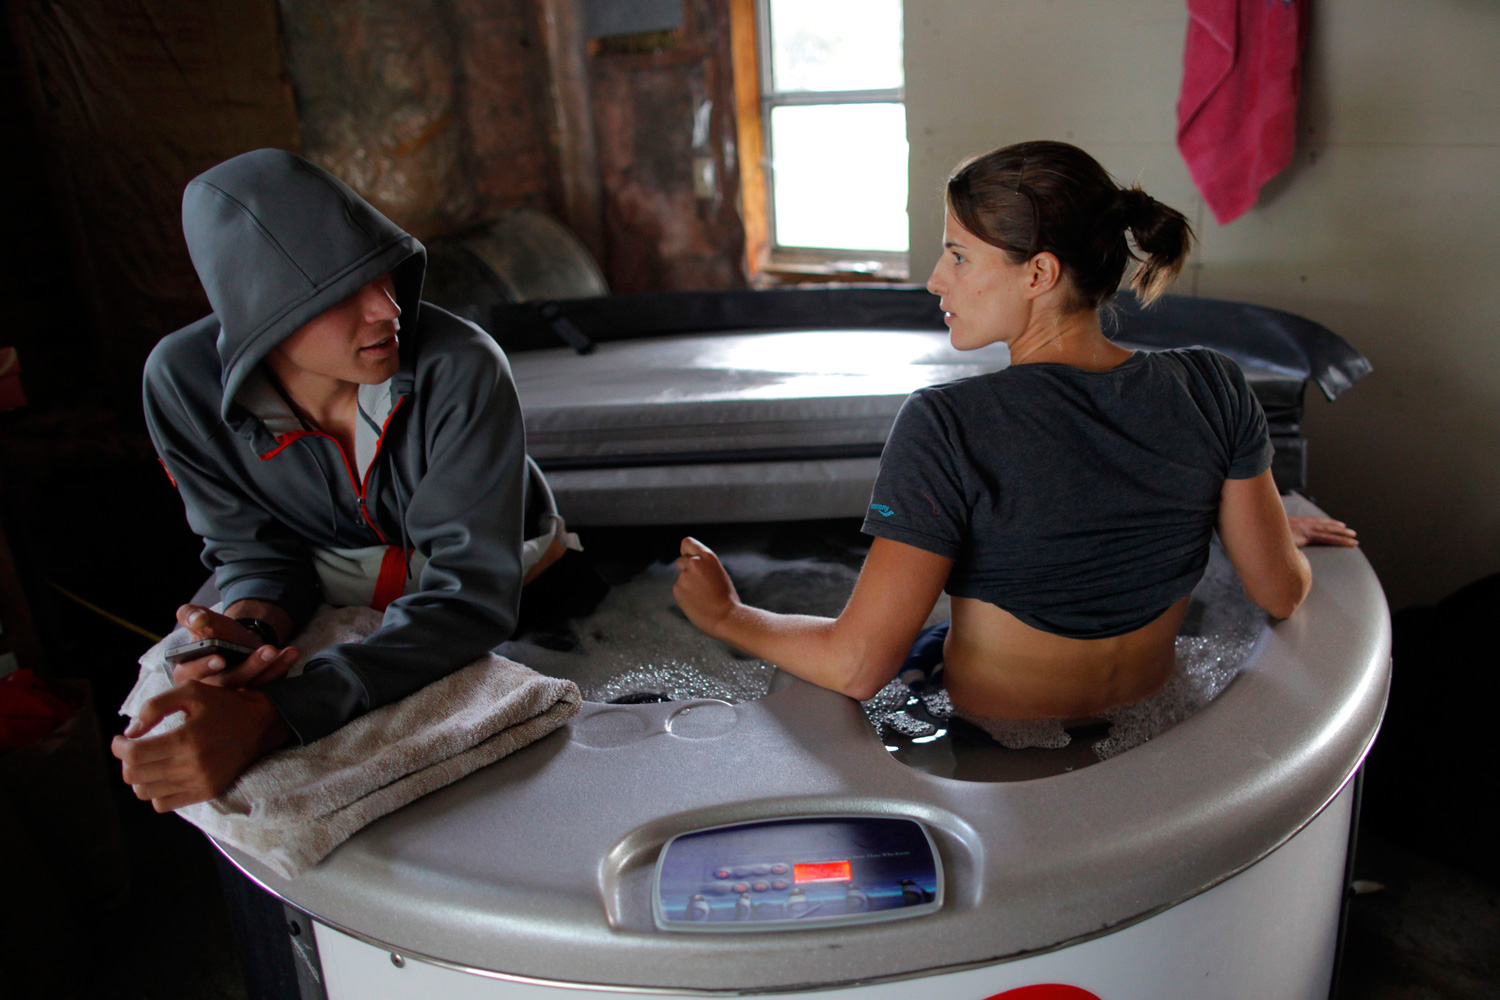 U.S. Olympic tri-athlete Sarah Groff, also the winner of the 2007 ITU Aquathlon World Championships, and her boyfriend Ben True (L) sit in an ice bath at their home in Hartford, Vermont after a day of training.